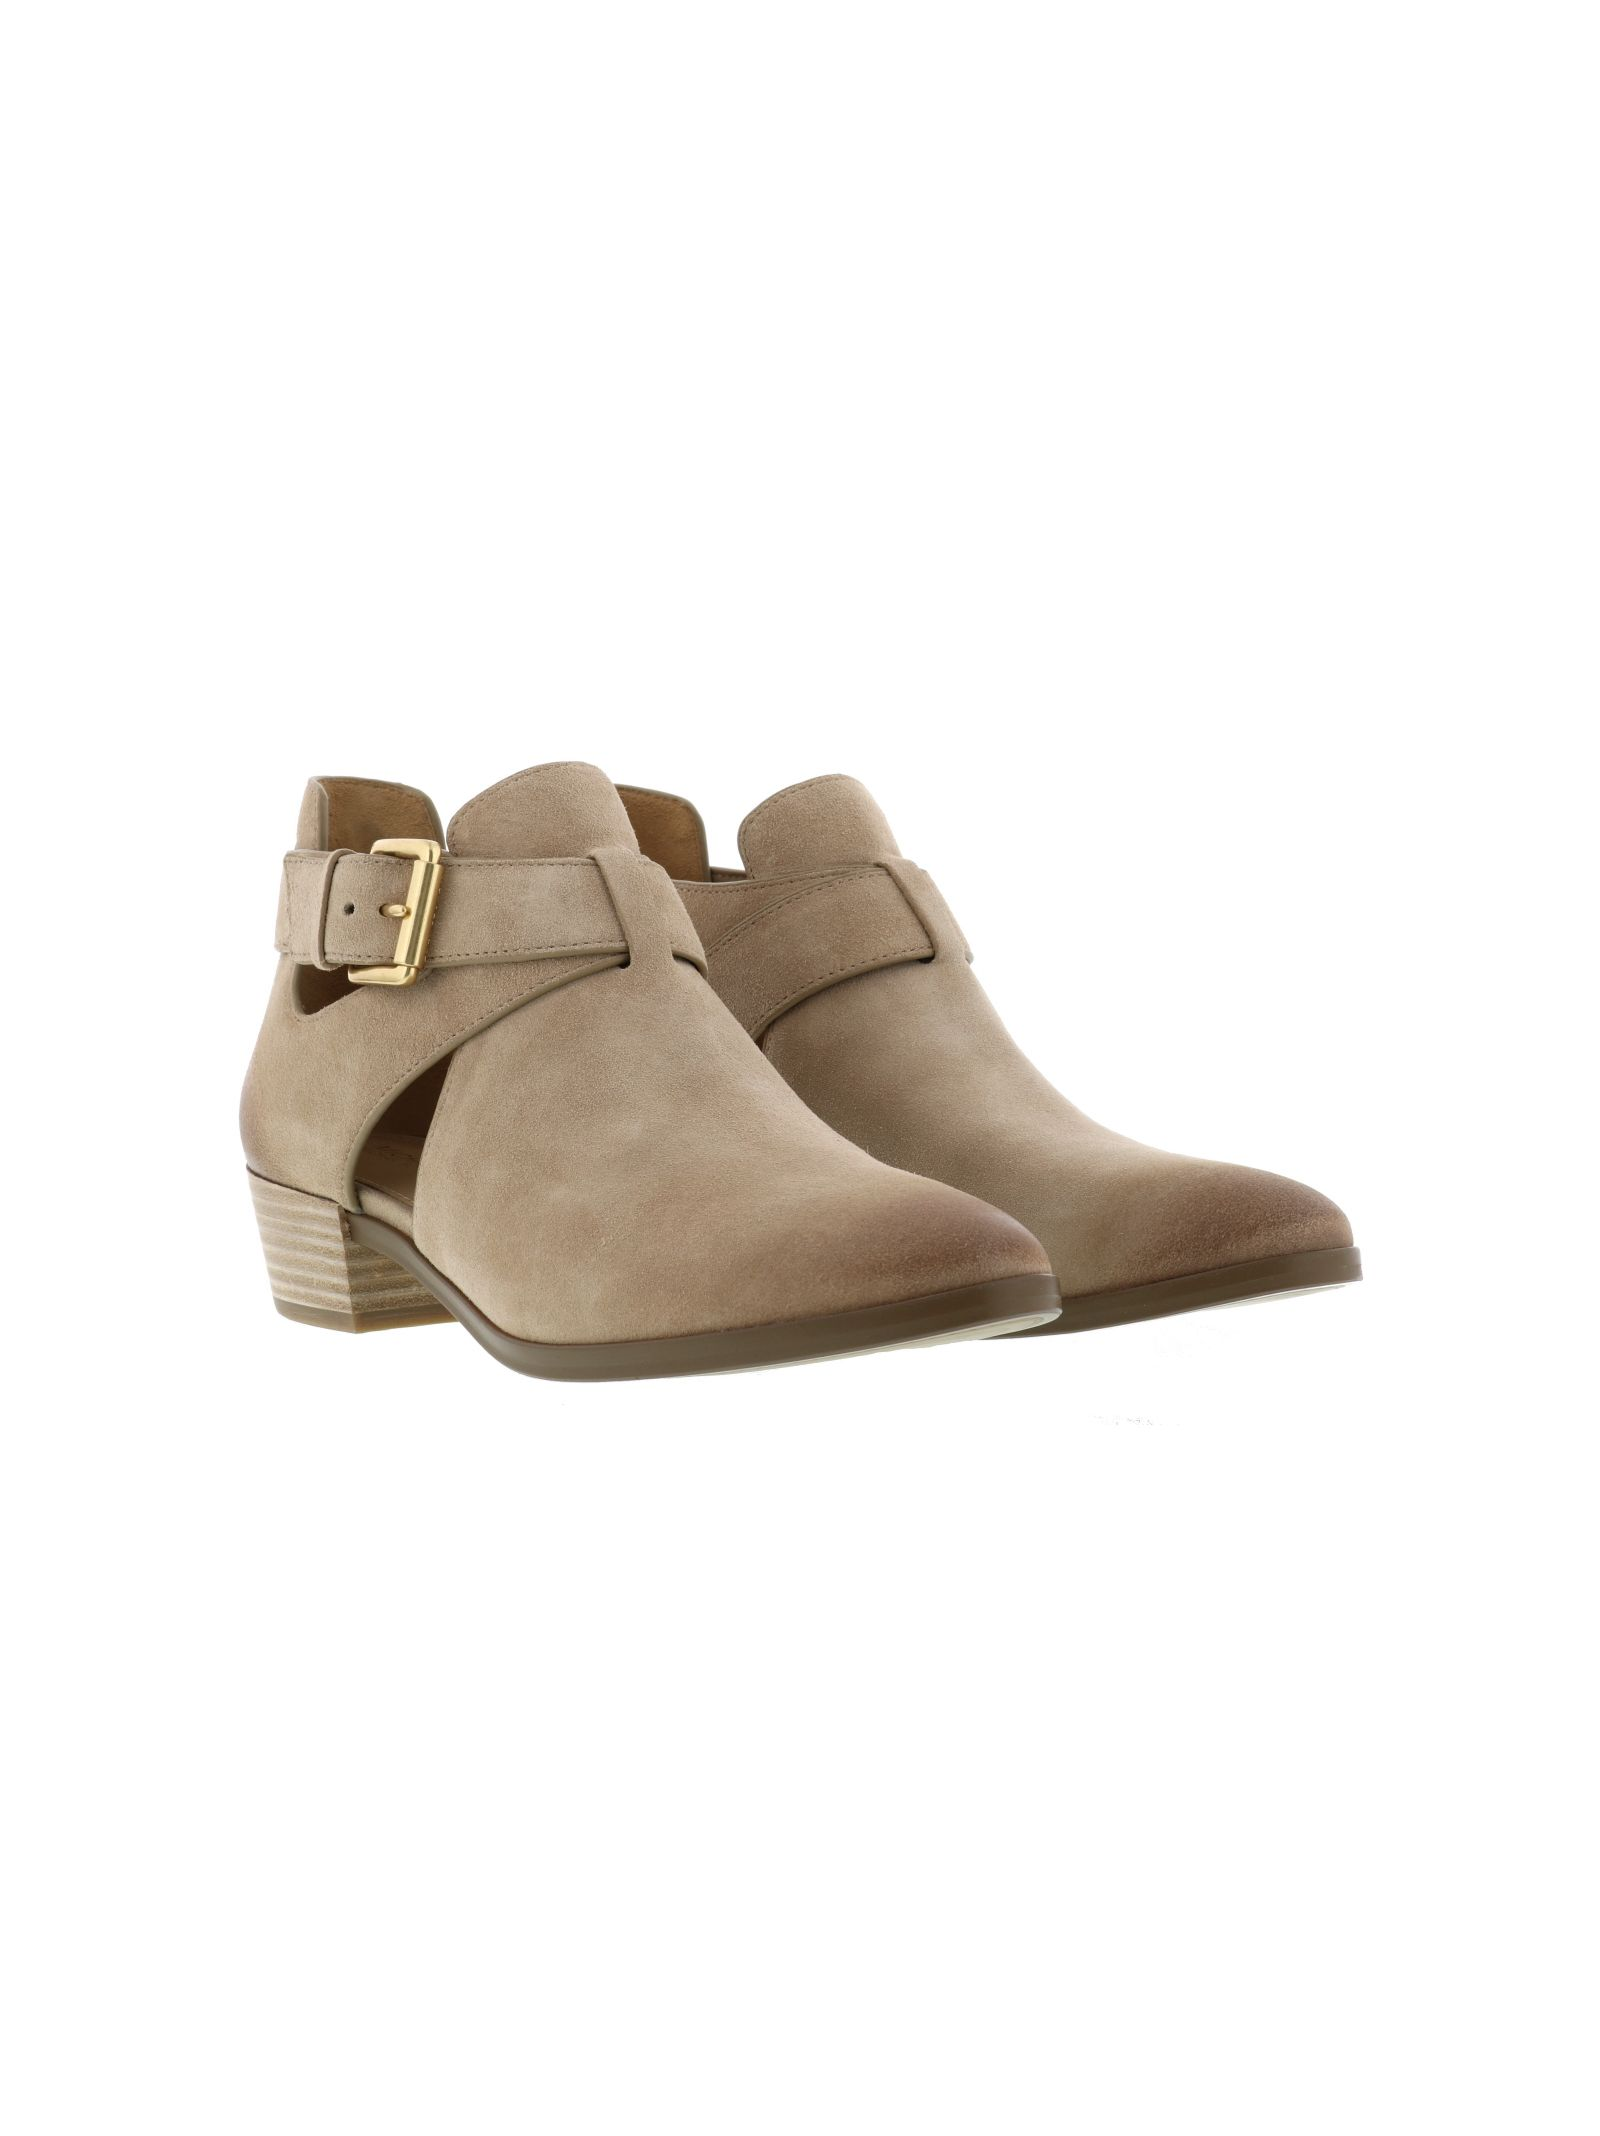 michael kors female michael kors mercer ankle boots